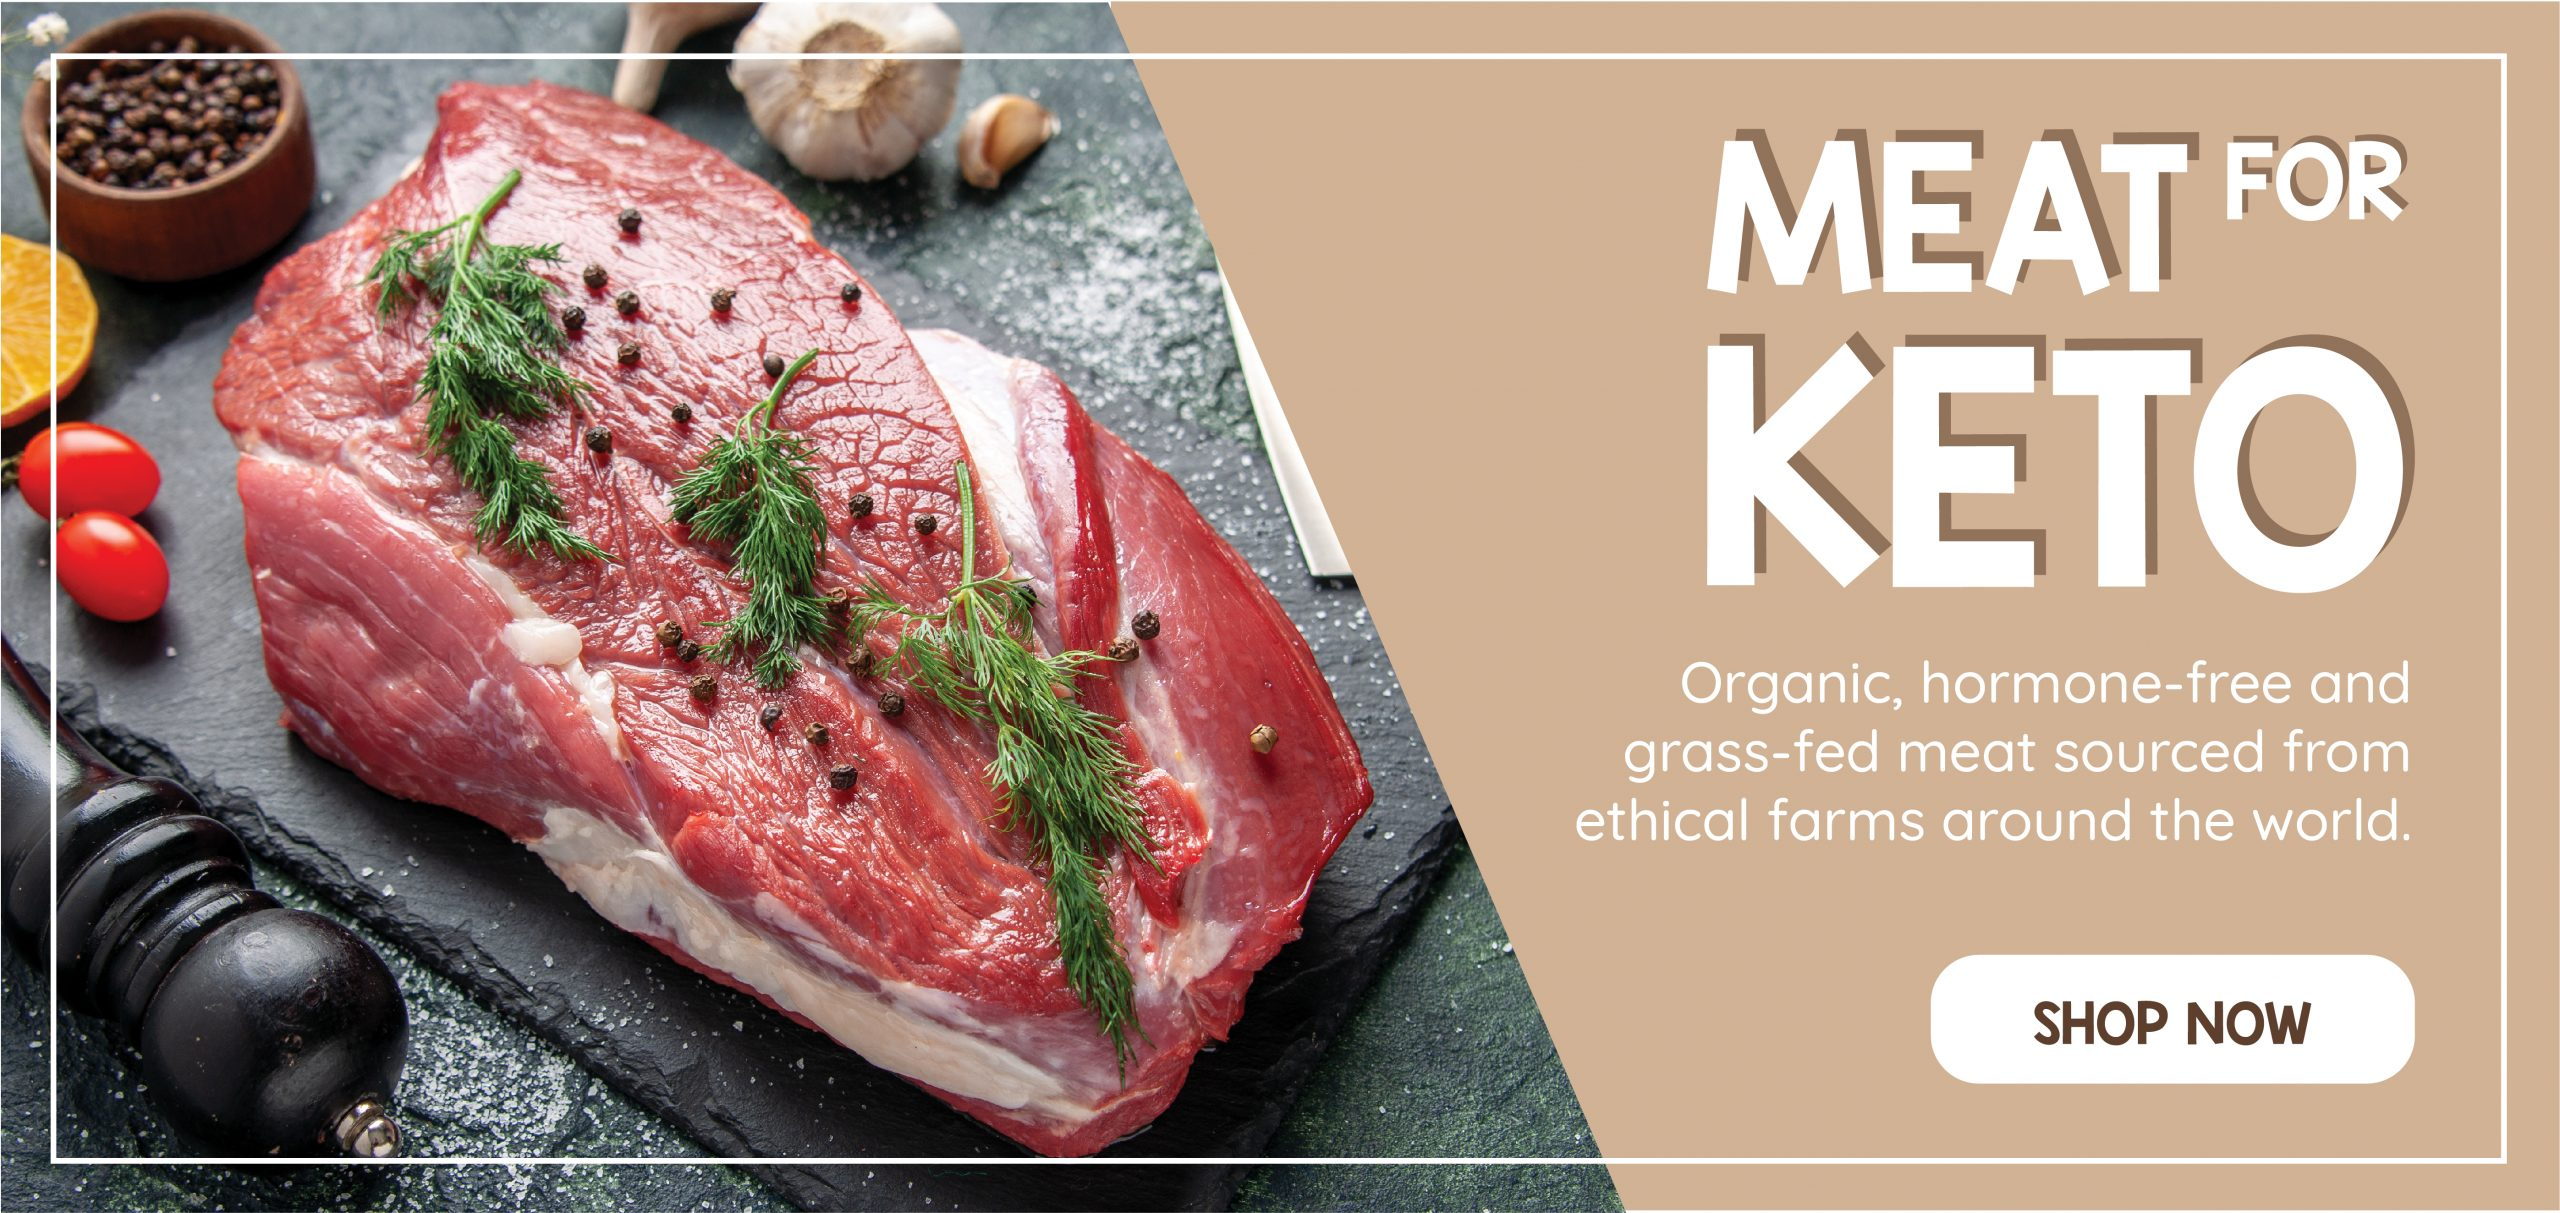 Meat for Keto